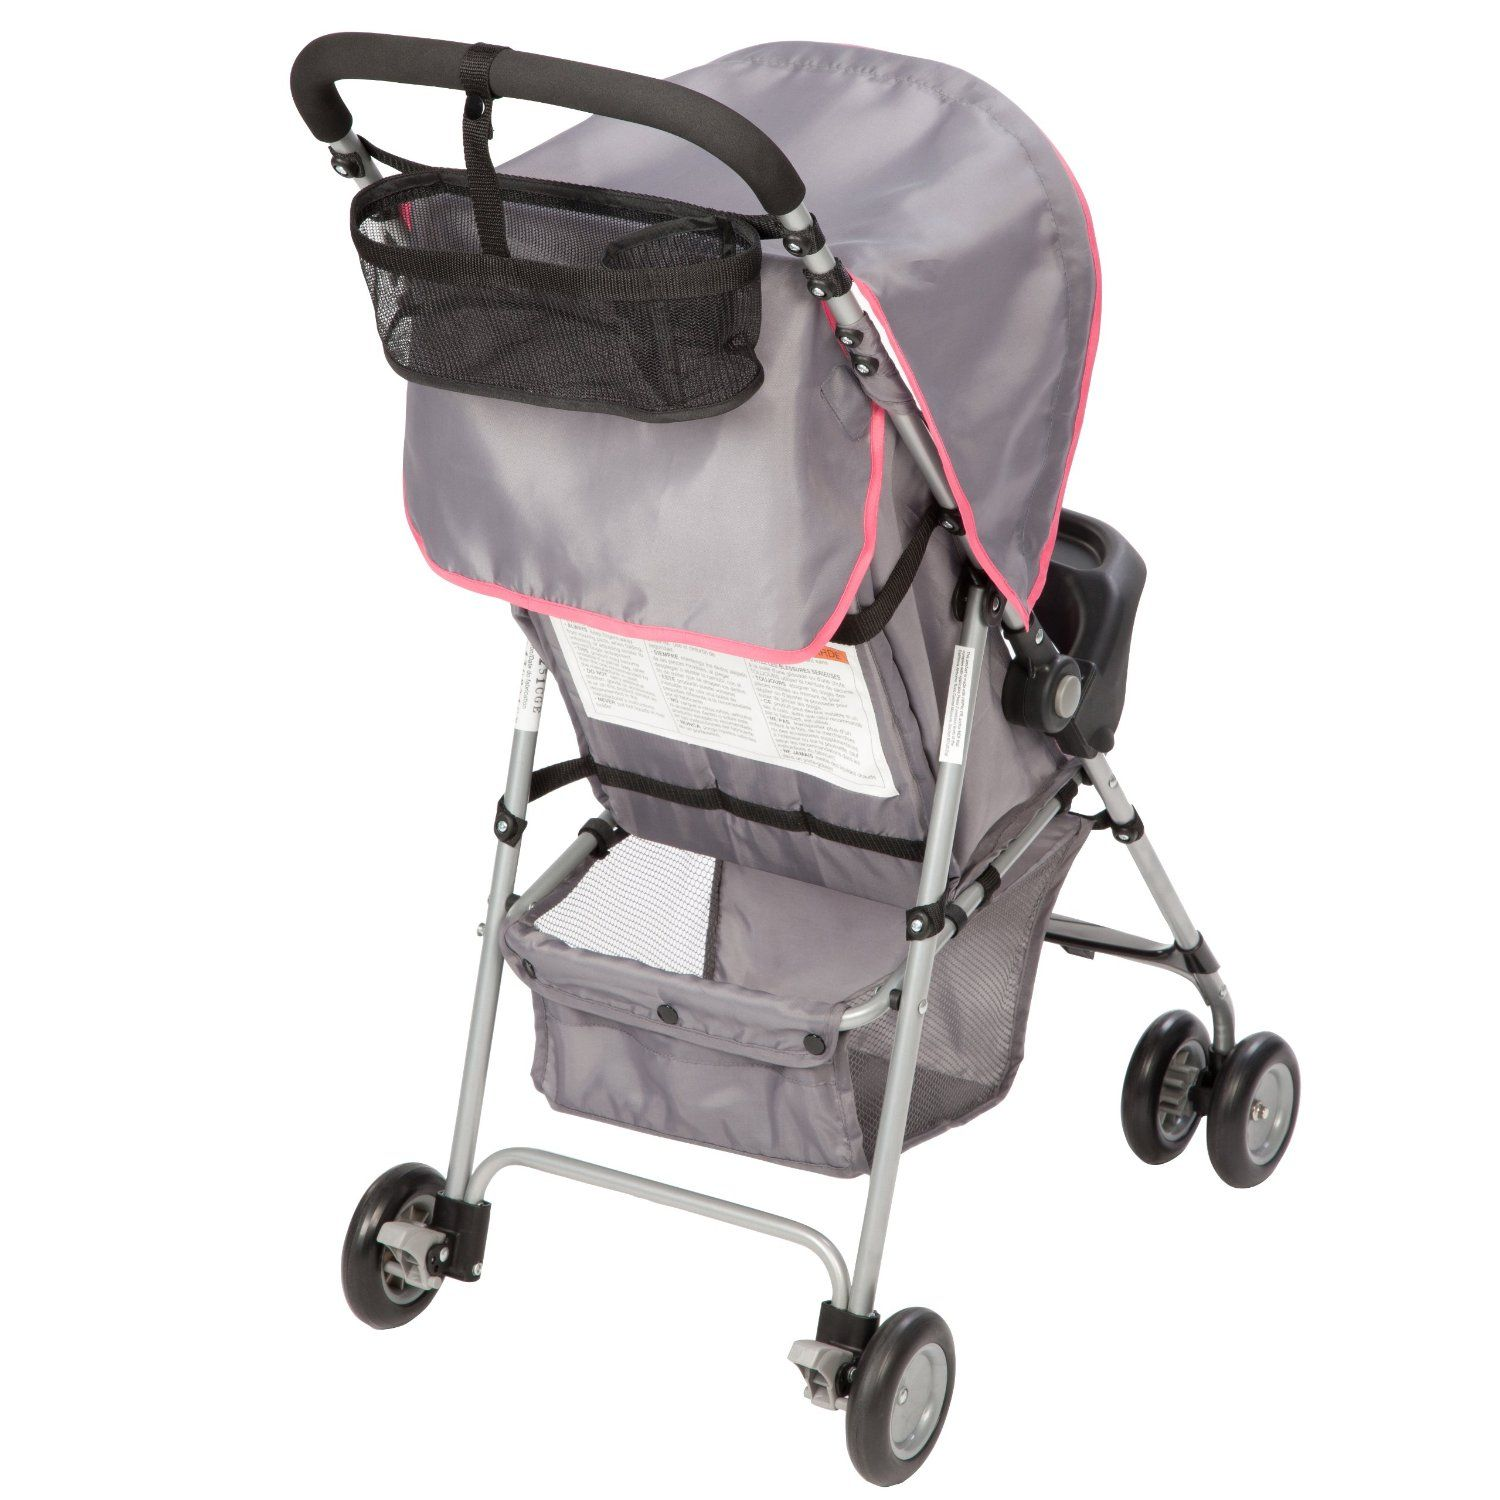 Cosco Umbria Zigzag lightweight cheap Stroller for